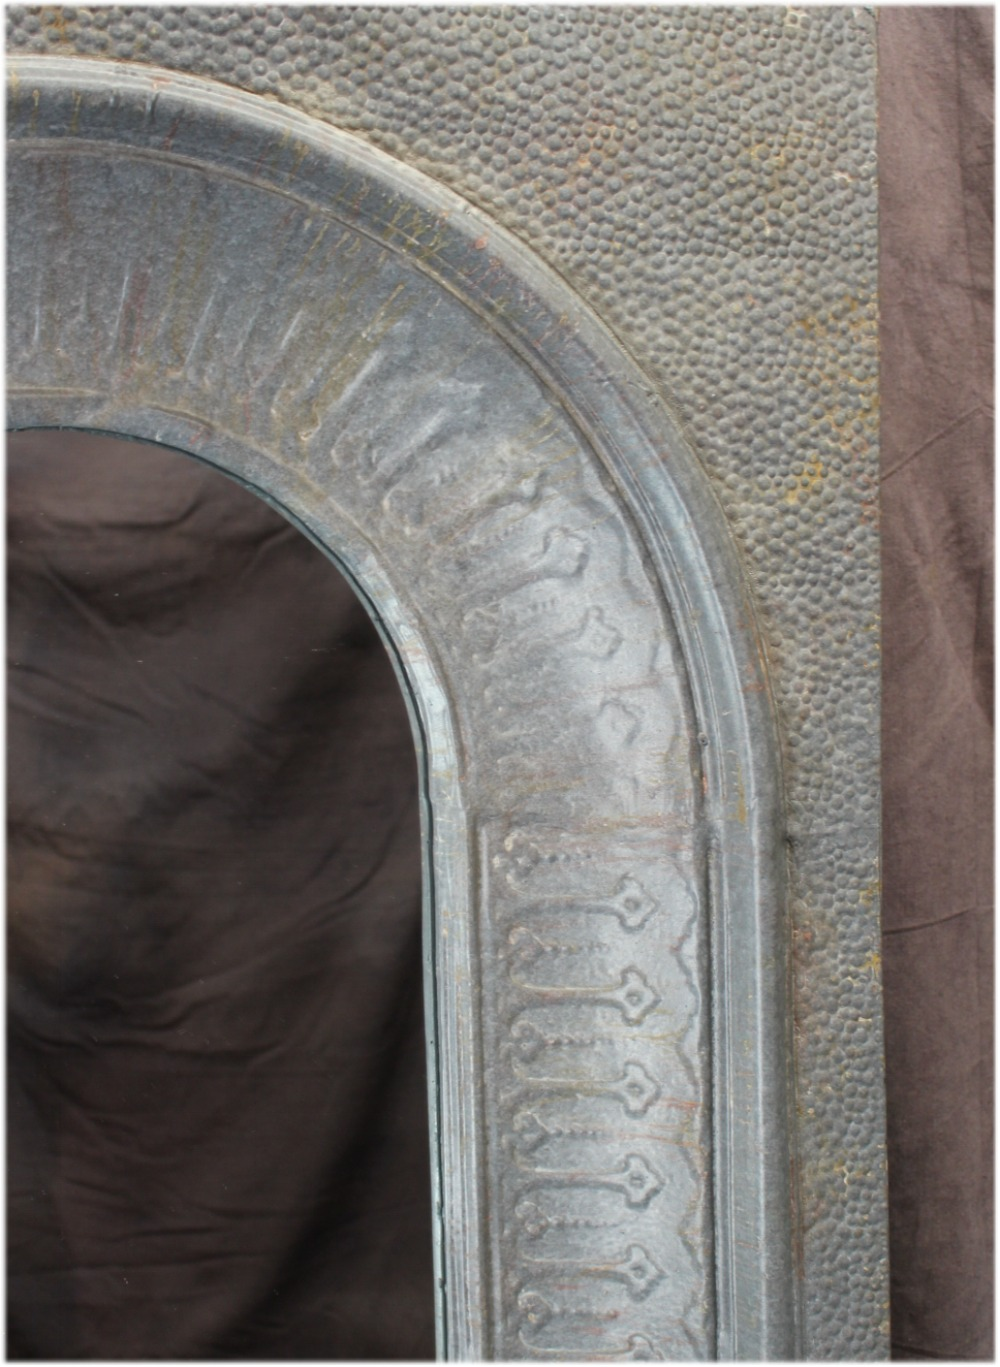 Giant Galvanized Stamped Tin Wall Mirror w Vintage Finish & Arched Top, Fantastic Designer